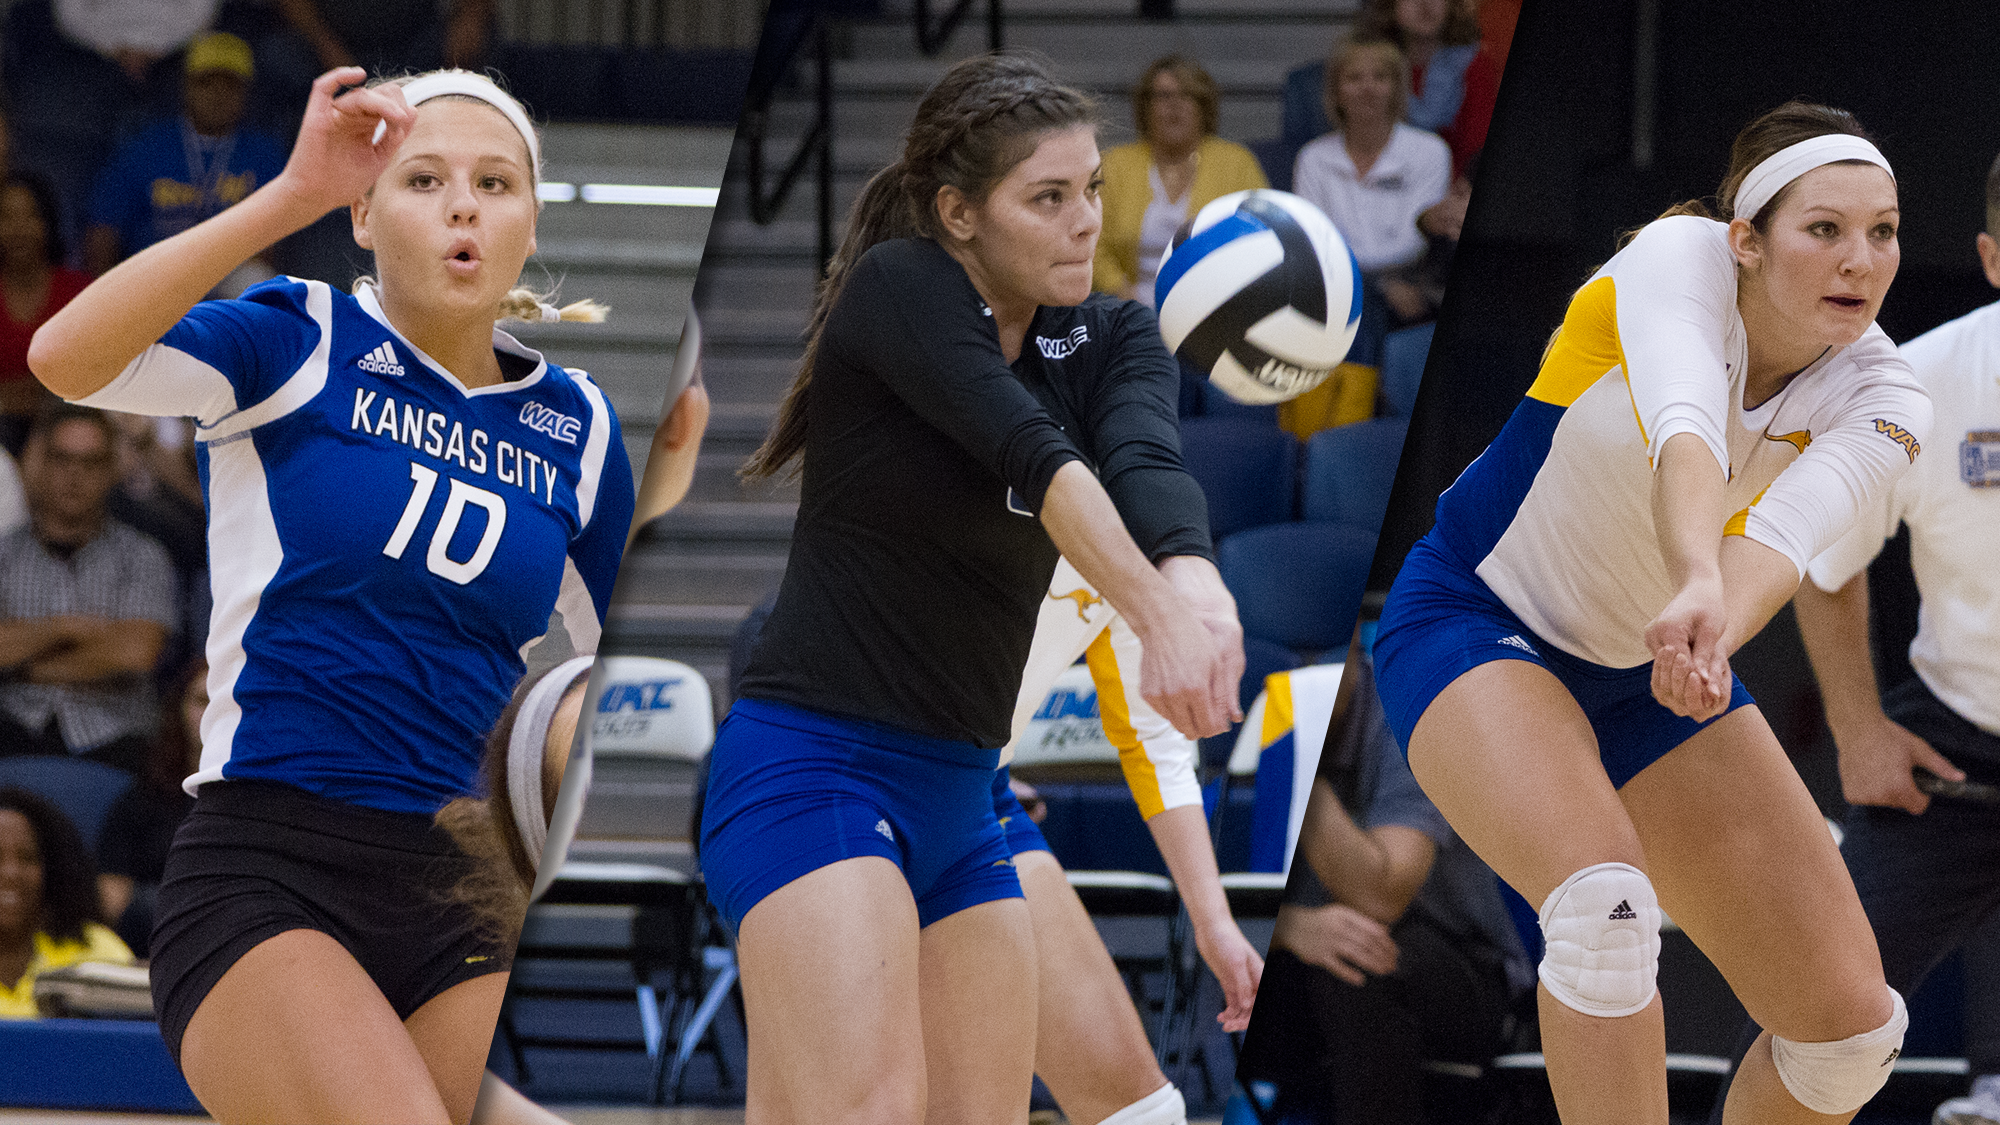 Trio Of Roos Earn All Wac Volleyball Honors Female Volleyball Players Professional Volleyball Players Volleyball